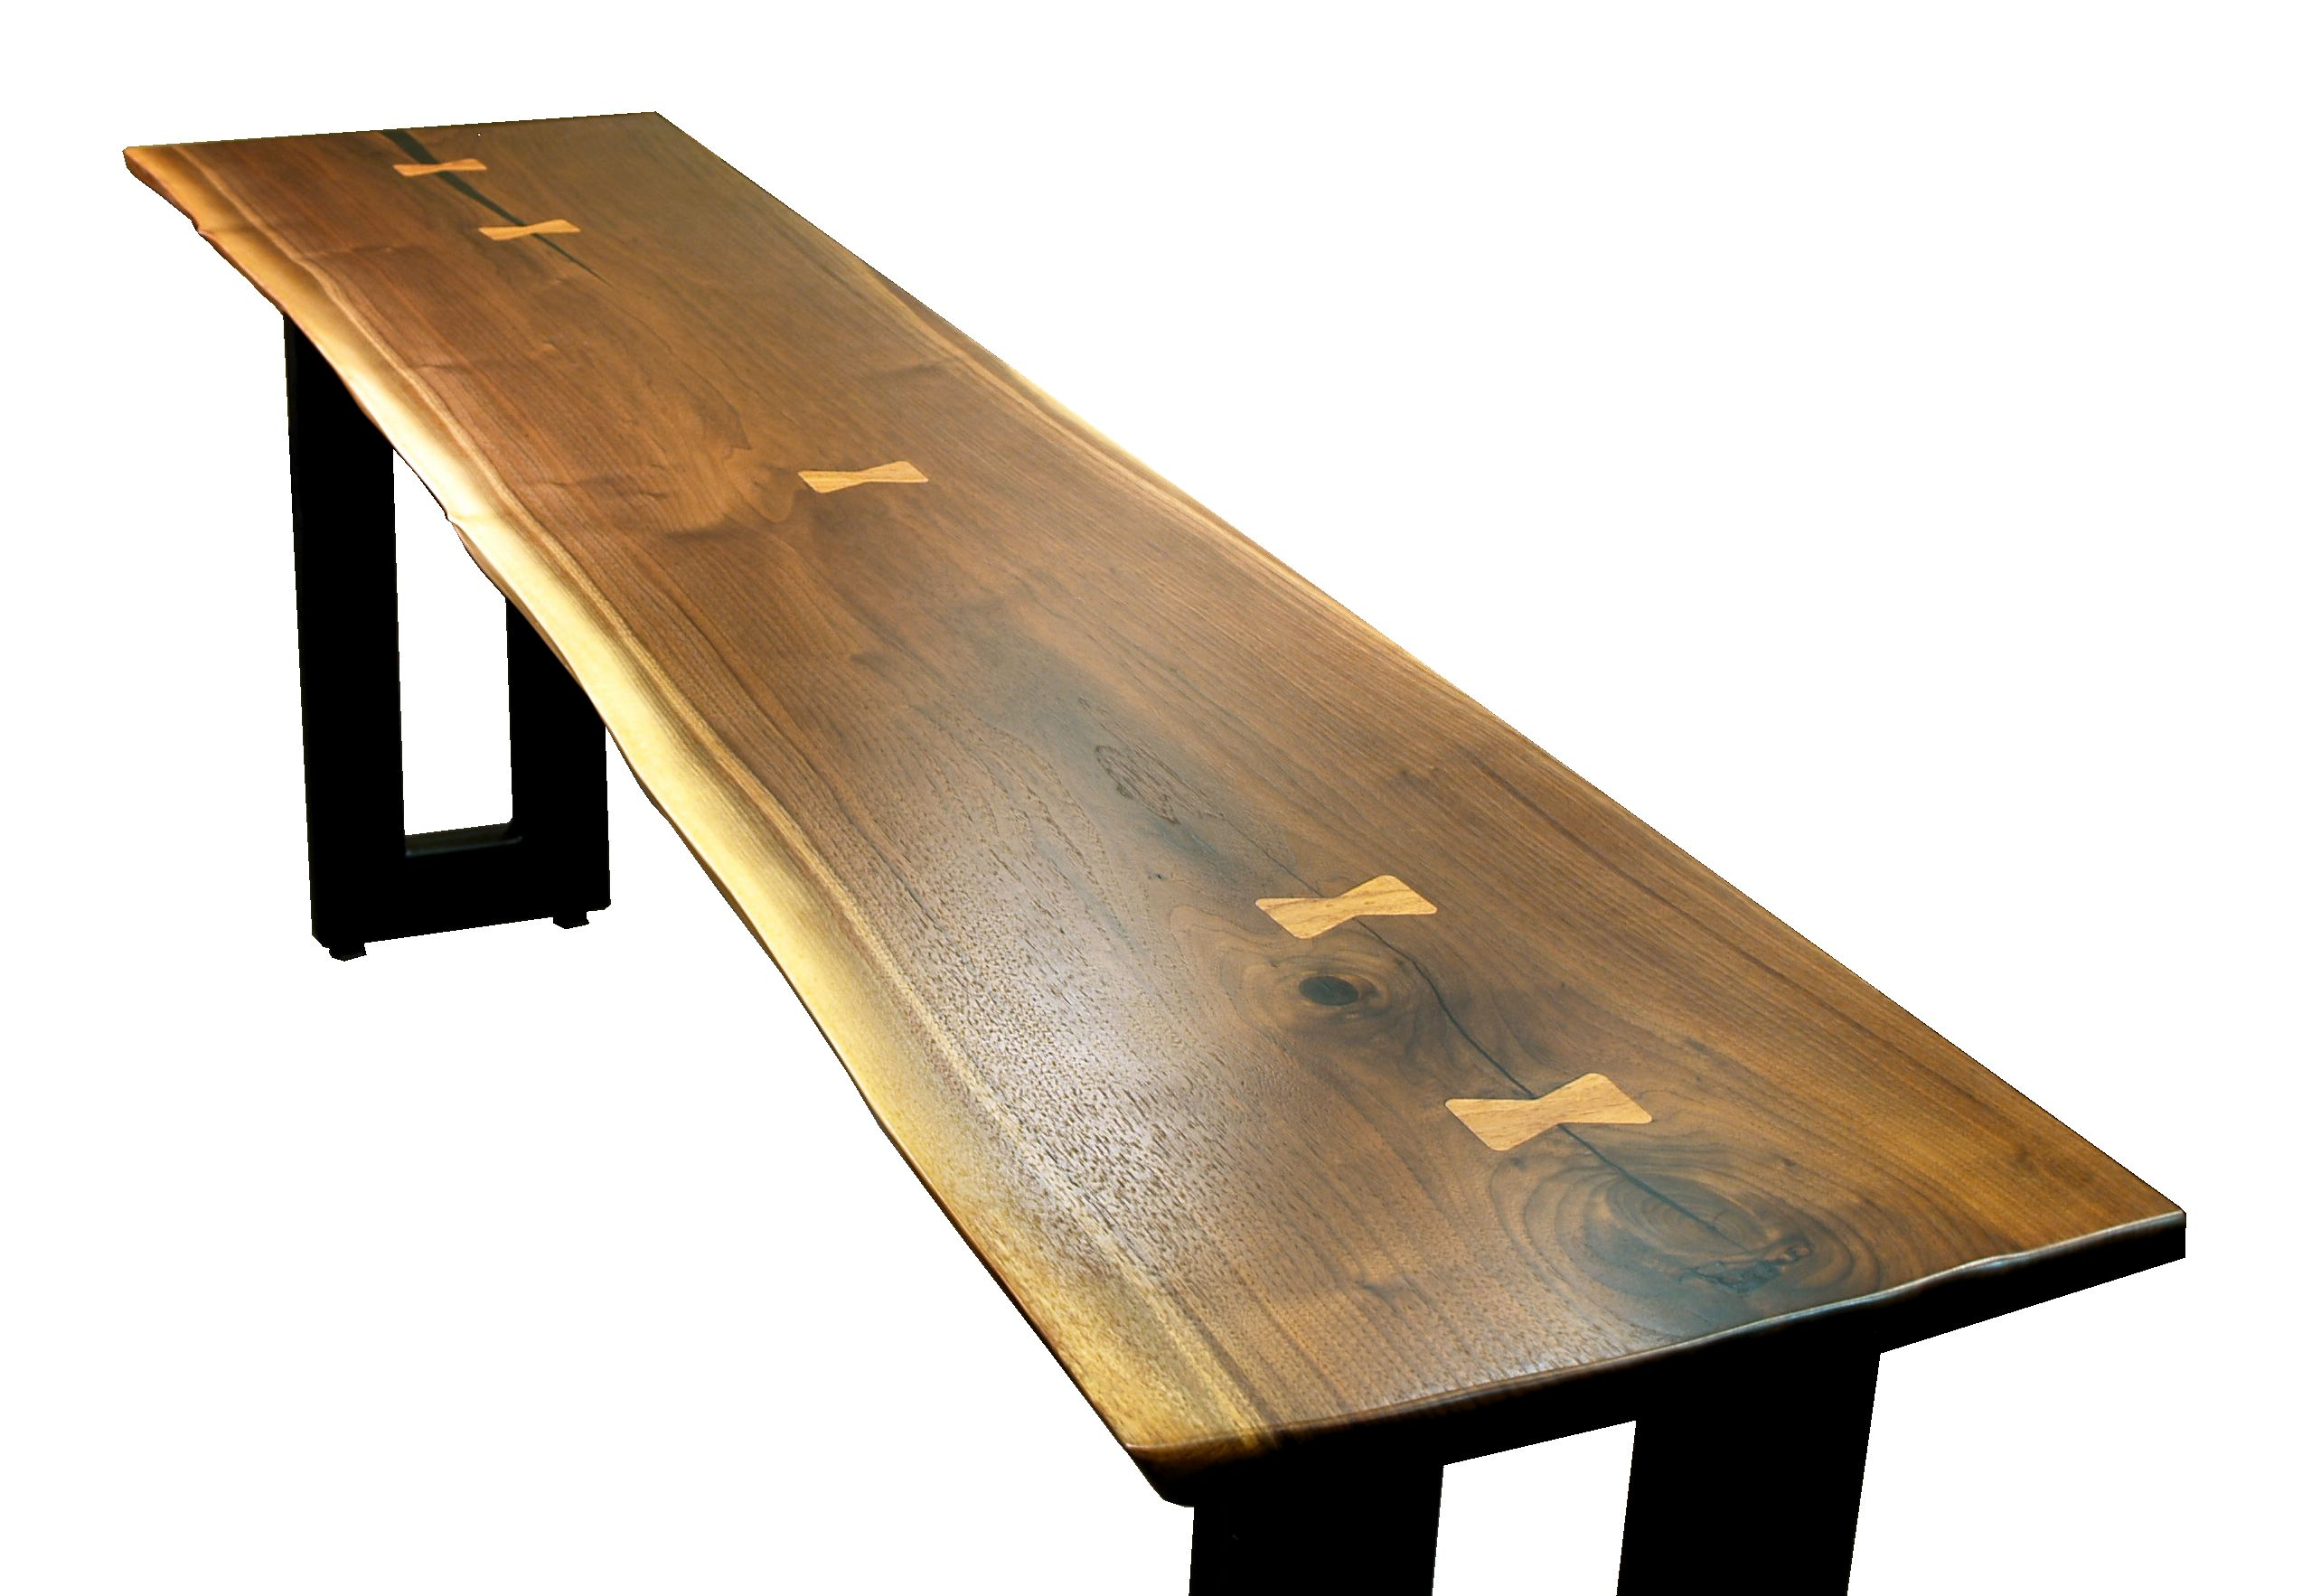 Custom Walnut Slab Table Top With Maple Erfly Inlays Natural Edges And Waterlox Satin Finish